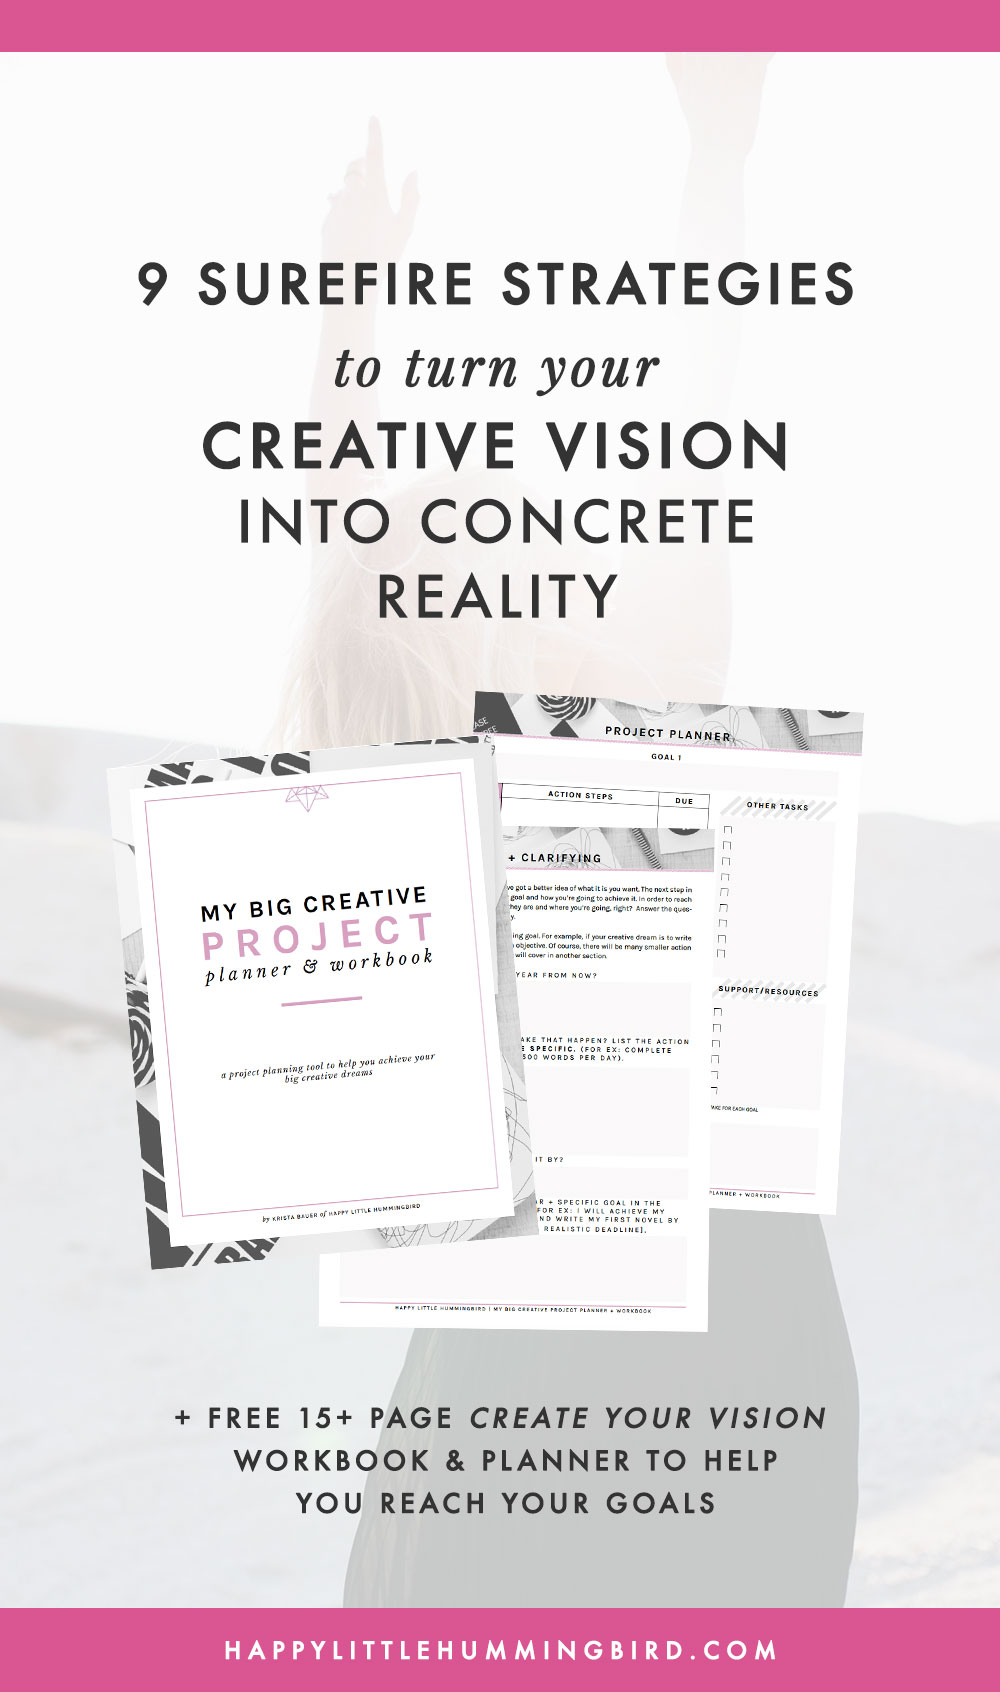 Do you have a desire to write, teach, paint, start a biz or ignite whatever creative spark is living inside you but can't seem to make your vision a reality? Learn 9 surefire strategies to help you reach your goals—things that stand between those who reach their dreams and those who want to but don't.